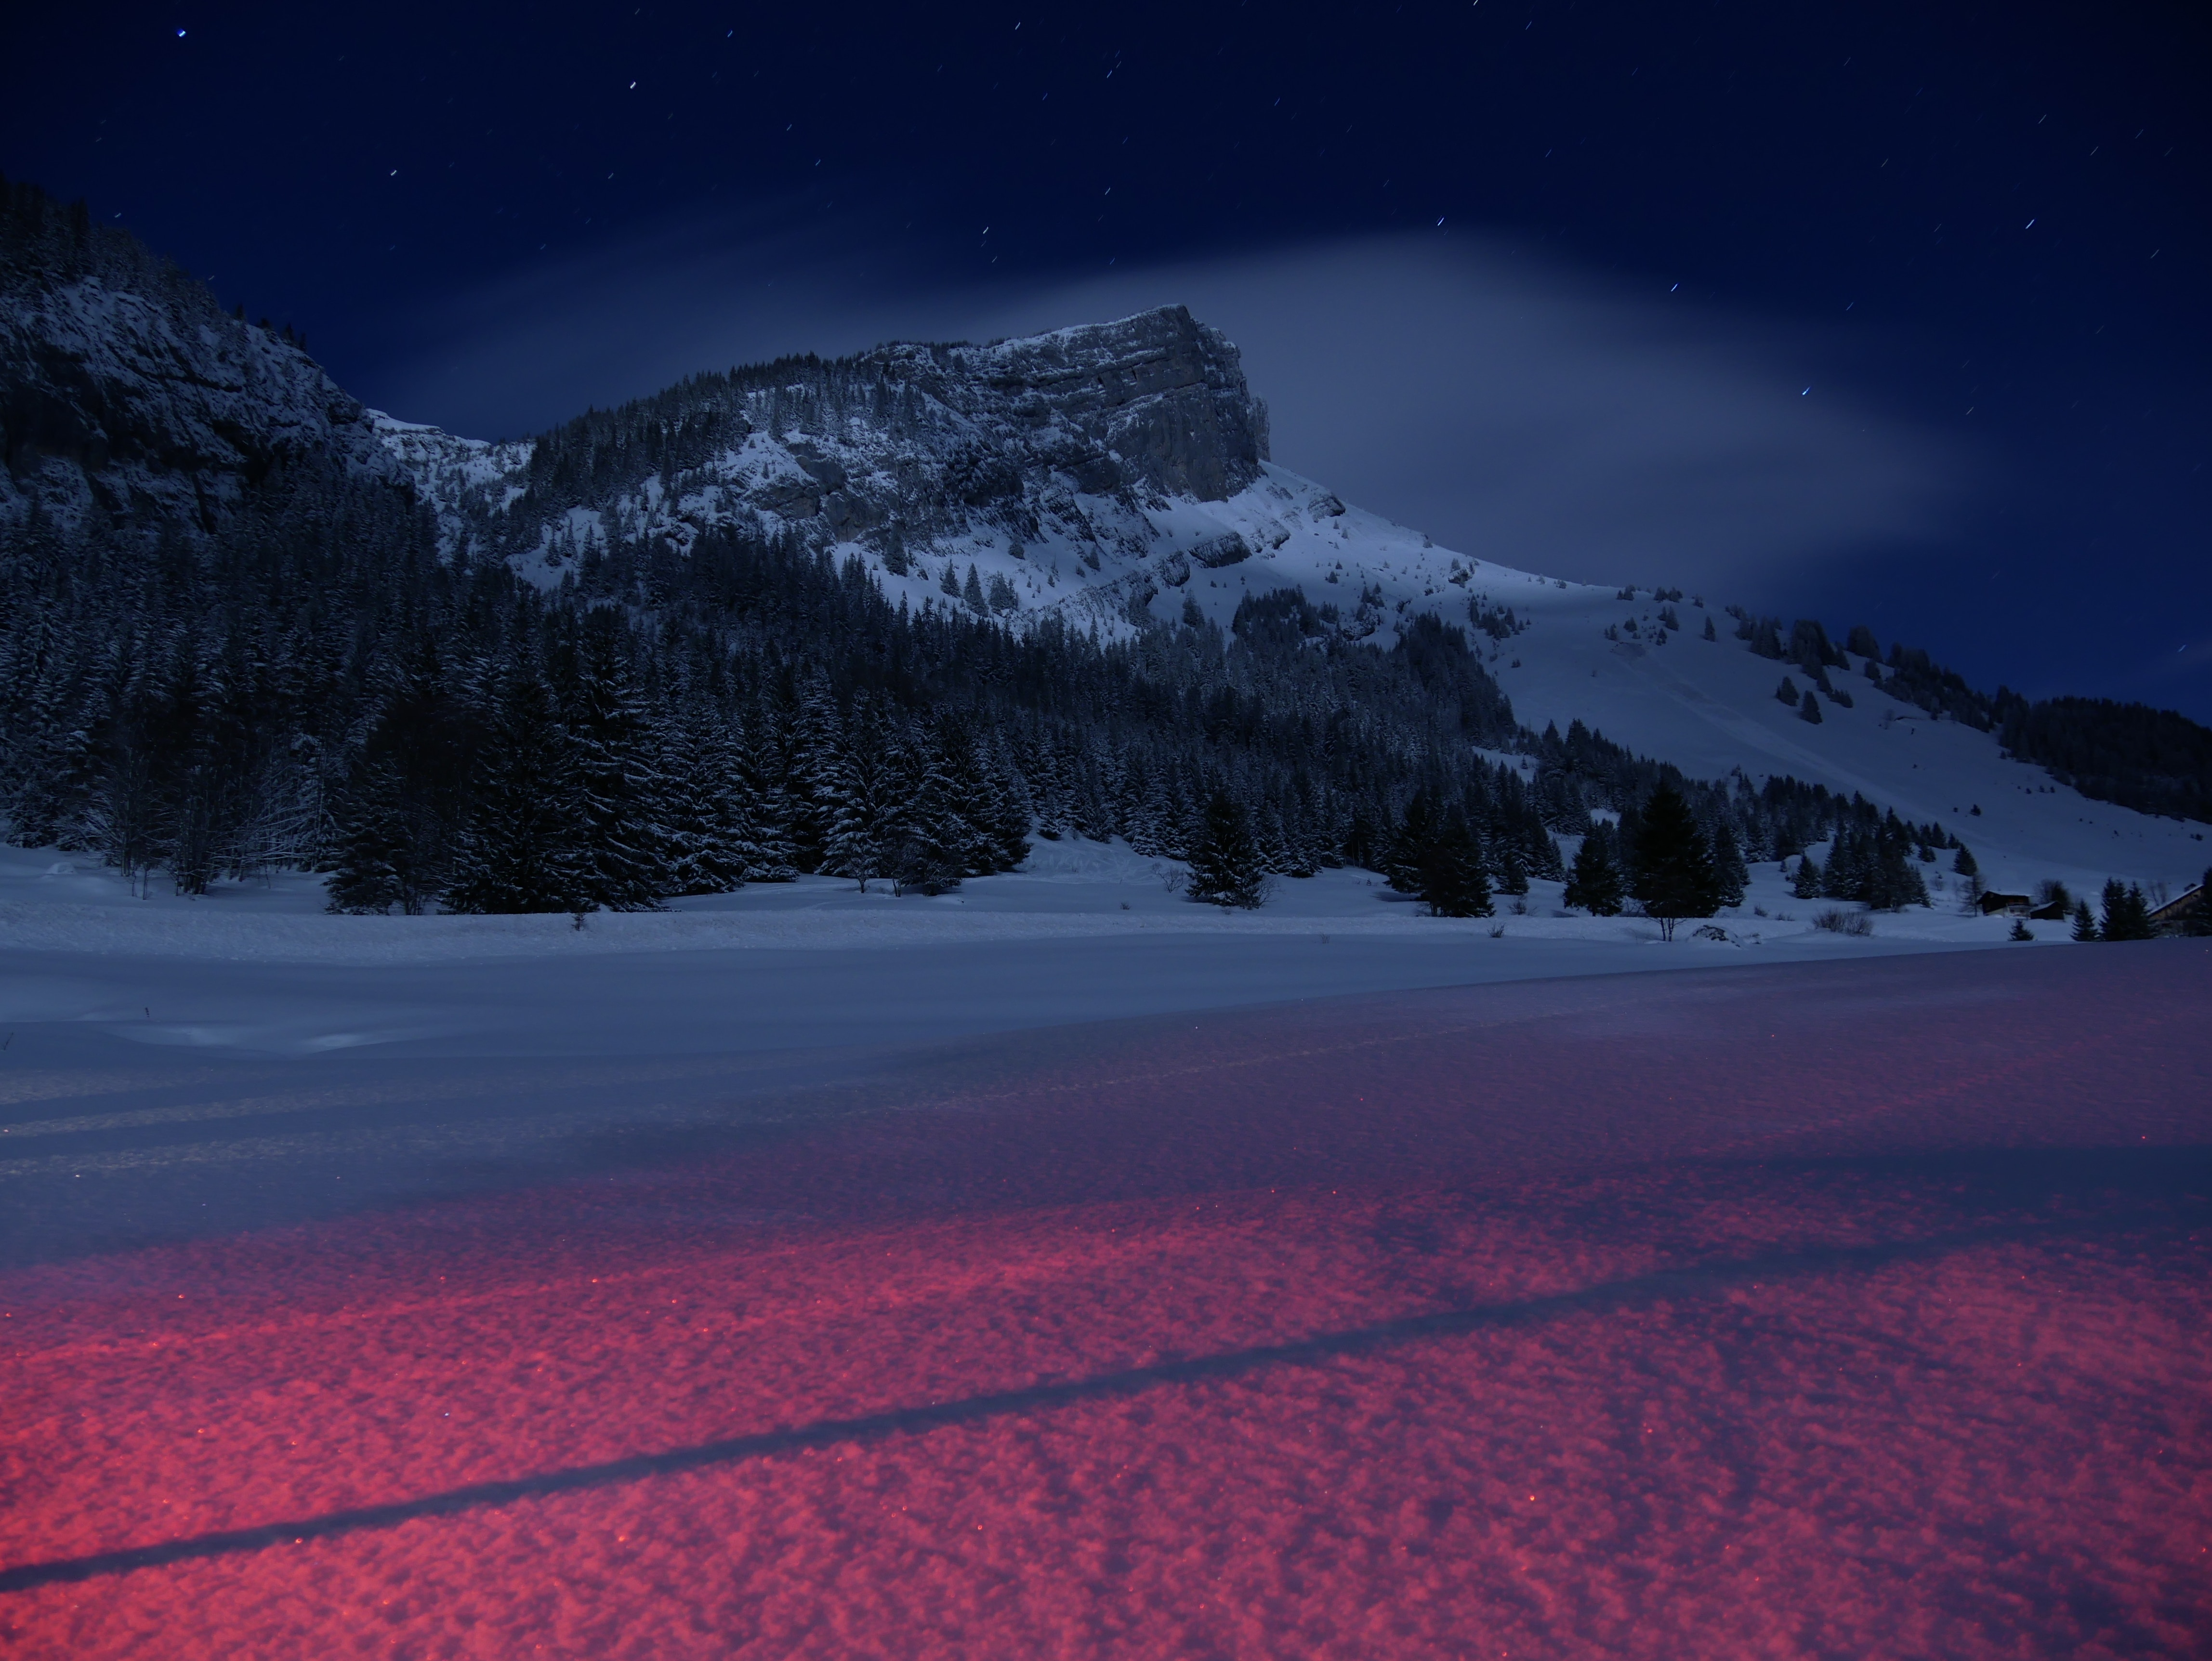 108343 download wallpaper Landscape, Winter, Nature, Mountains, Night, Snow, France screensavers and pictures for free